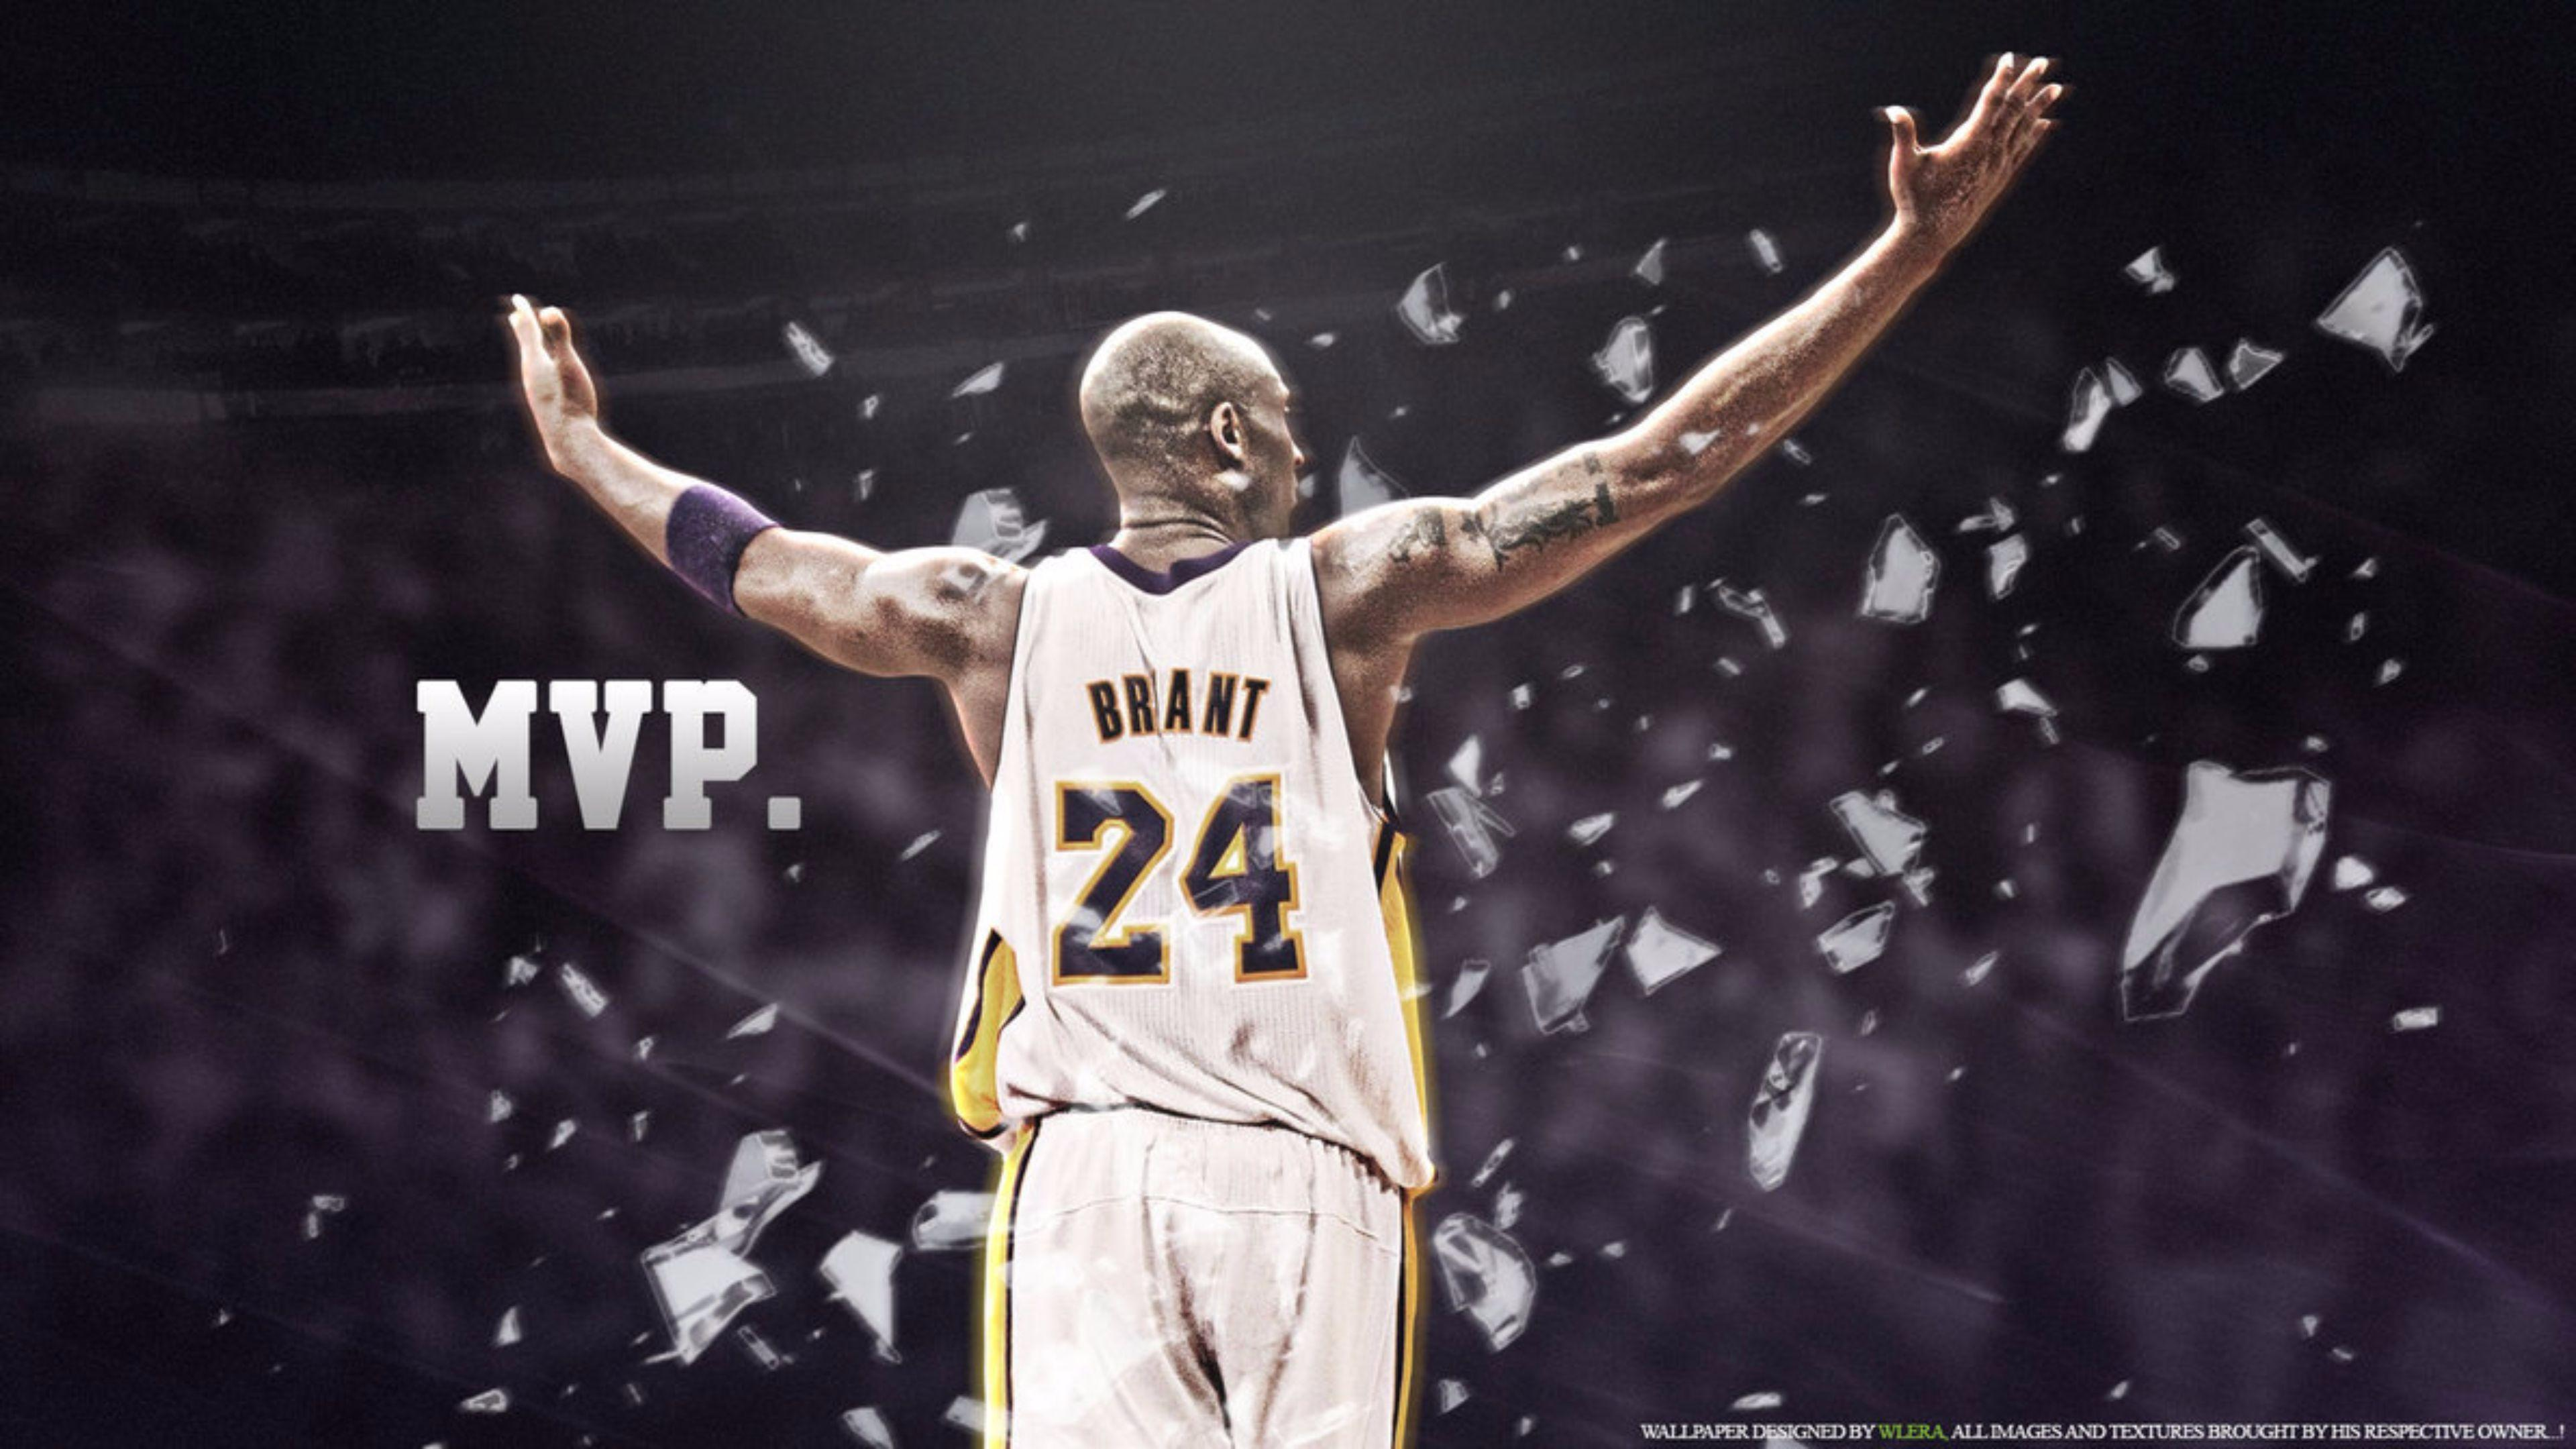 kobe bryant nice wallpapers - photo #30